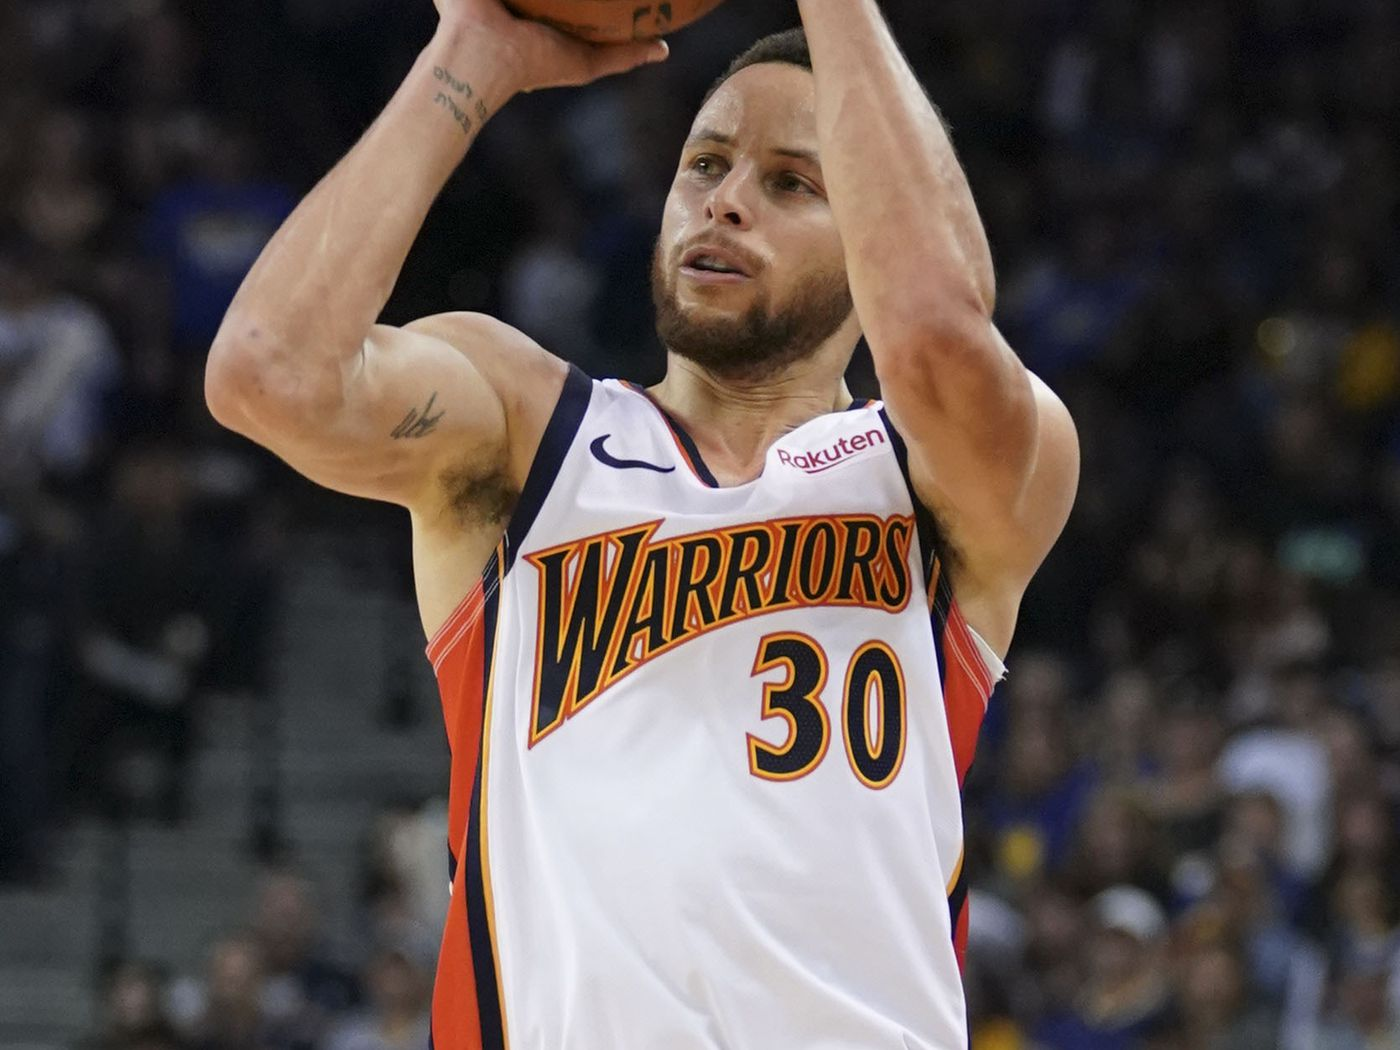 sale retailer a8448 24b6d Warriors Game Breakdown: Curry leads the Dubs to victory ...